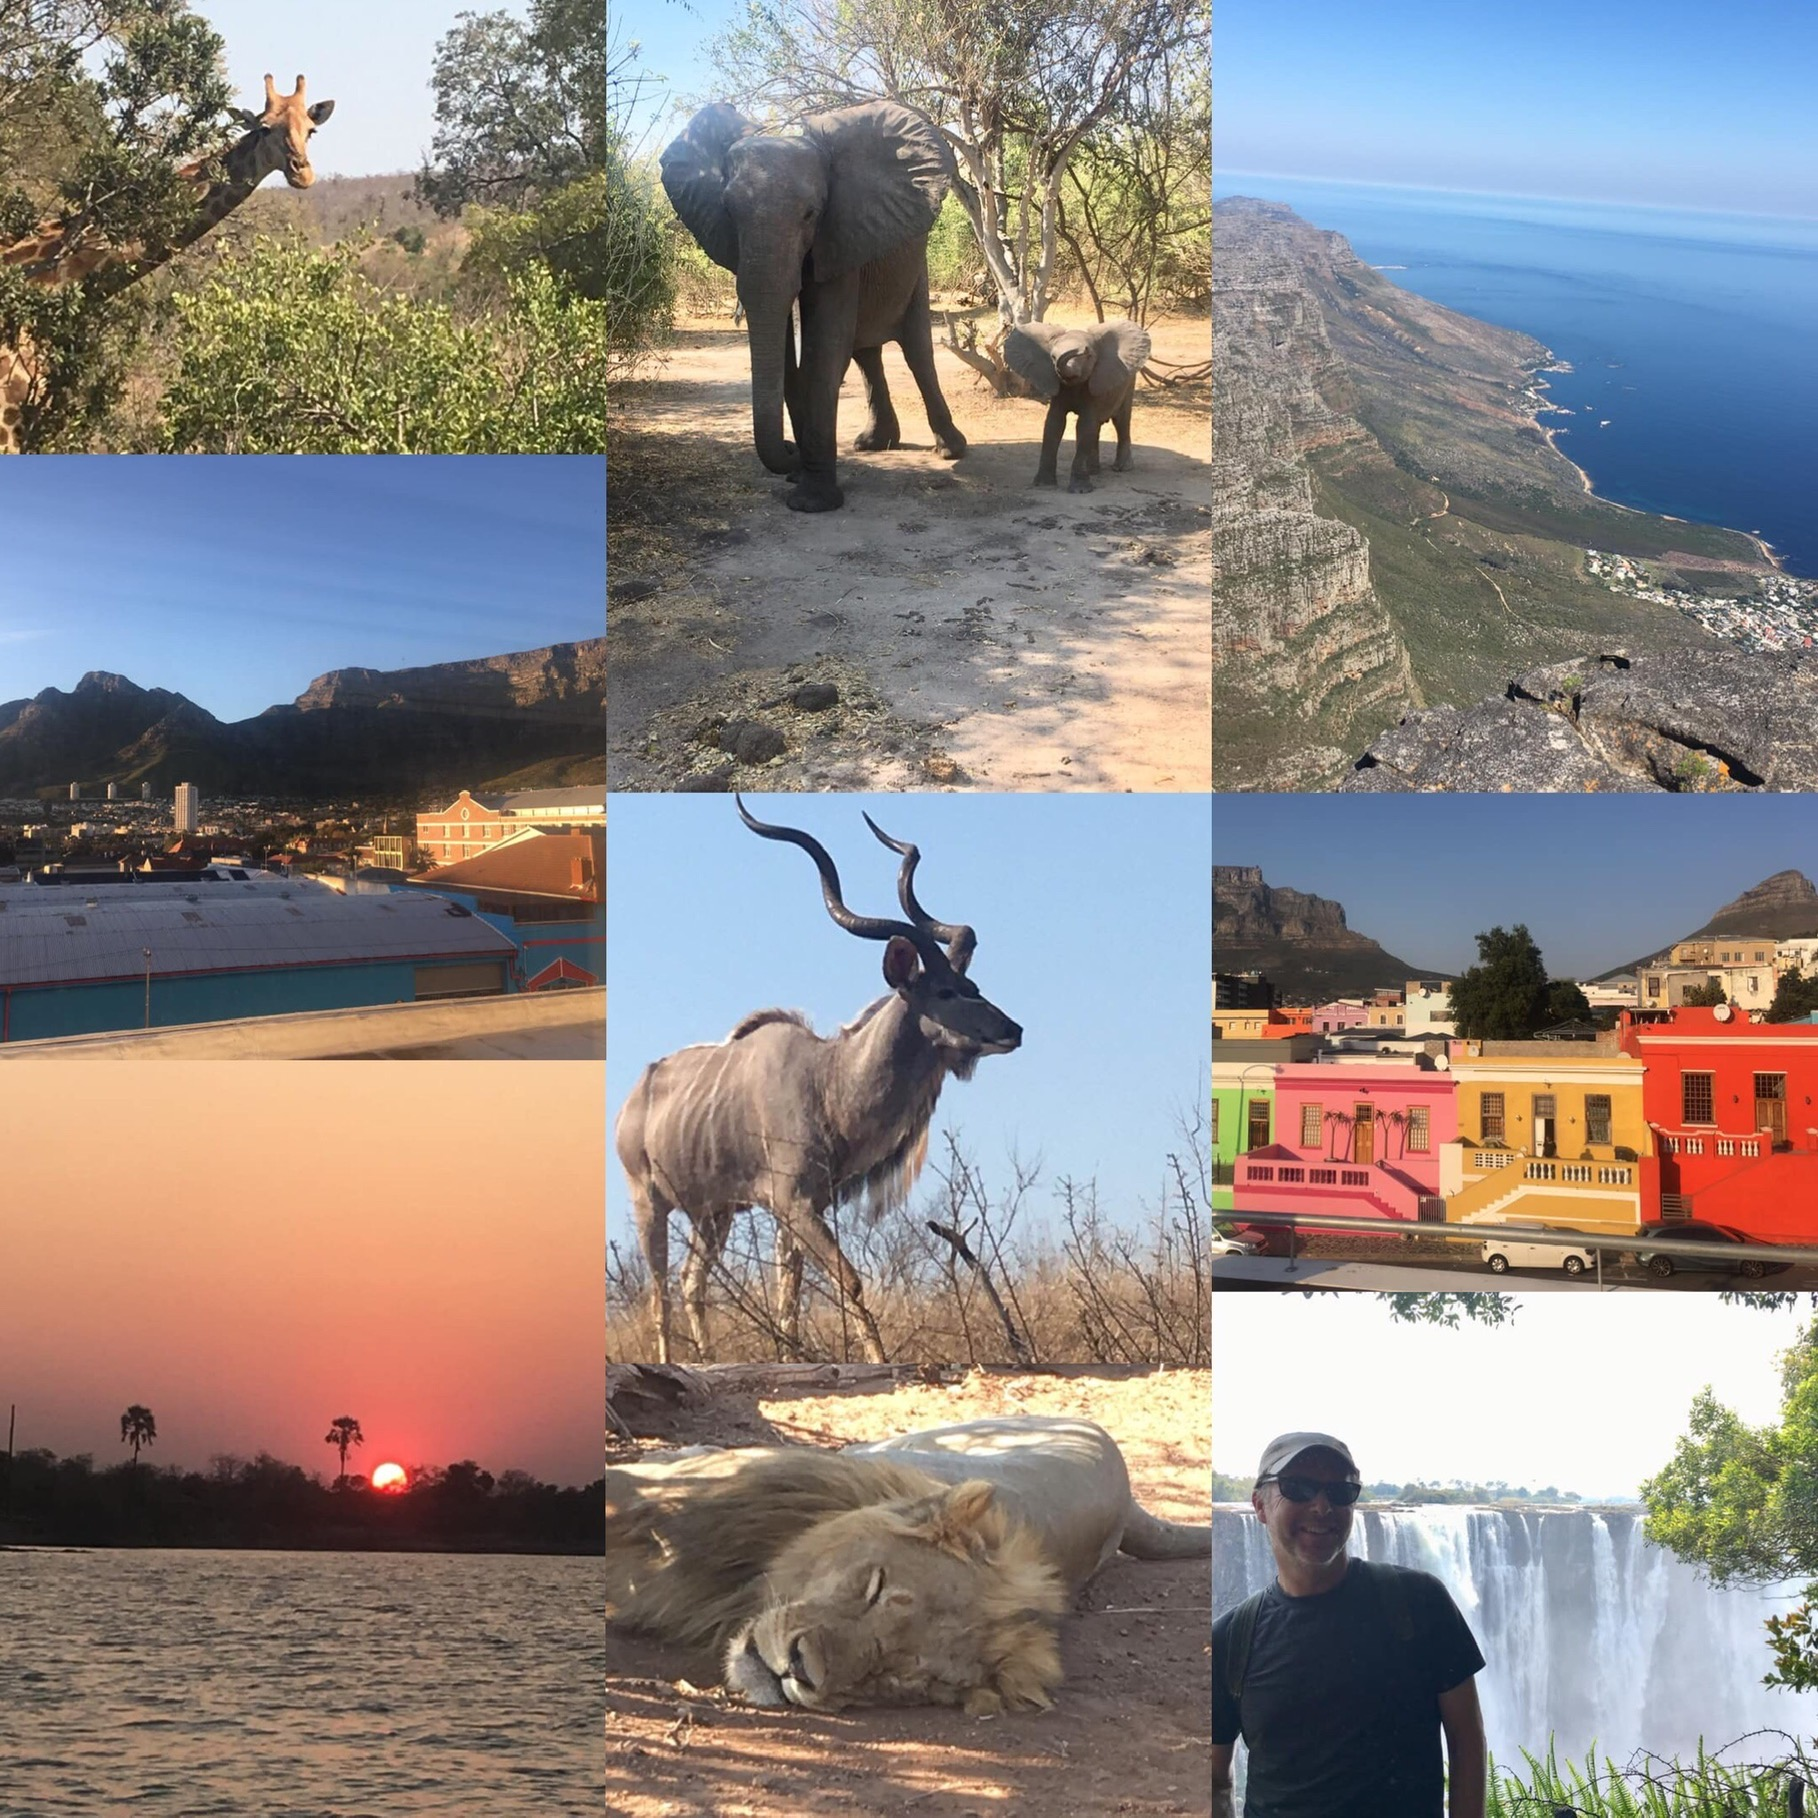 south africa solo - Best Africa travel experience! Three weeks of seeing all South Africa with details planned and assured making time hassle free. Not one glitch with air, hotels, travel, etc - I saw tons of animals while enjoying local culture at each stop. Tom K, St. Paul MN. Traveled Sept. 2019